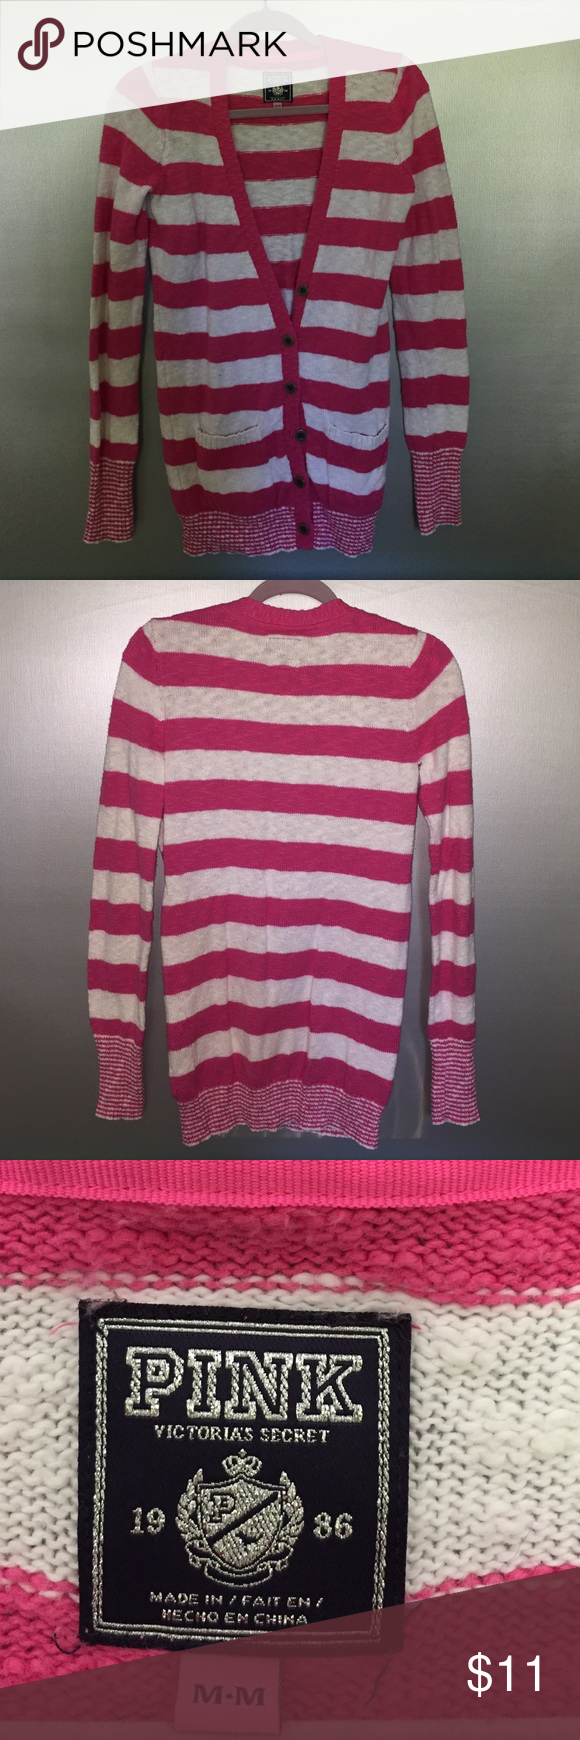 Vintage PINK Sweater | Vintage pink, Cozy and Customer support